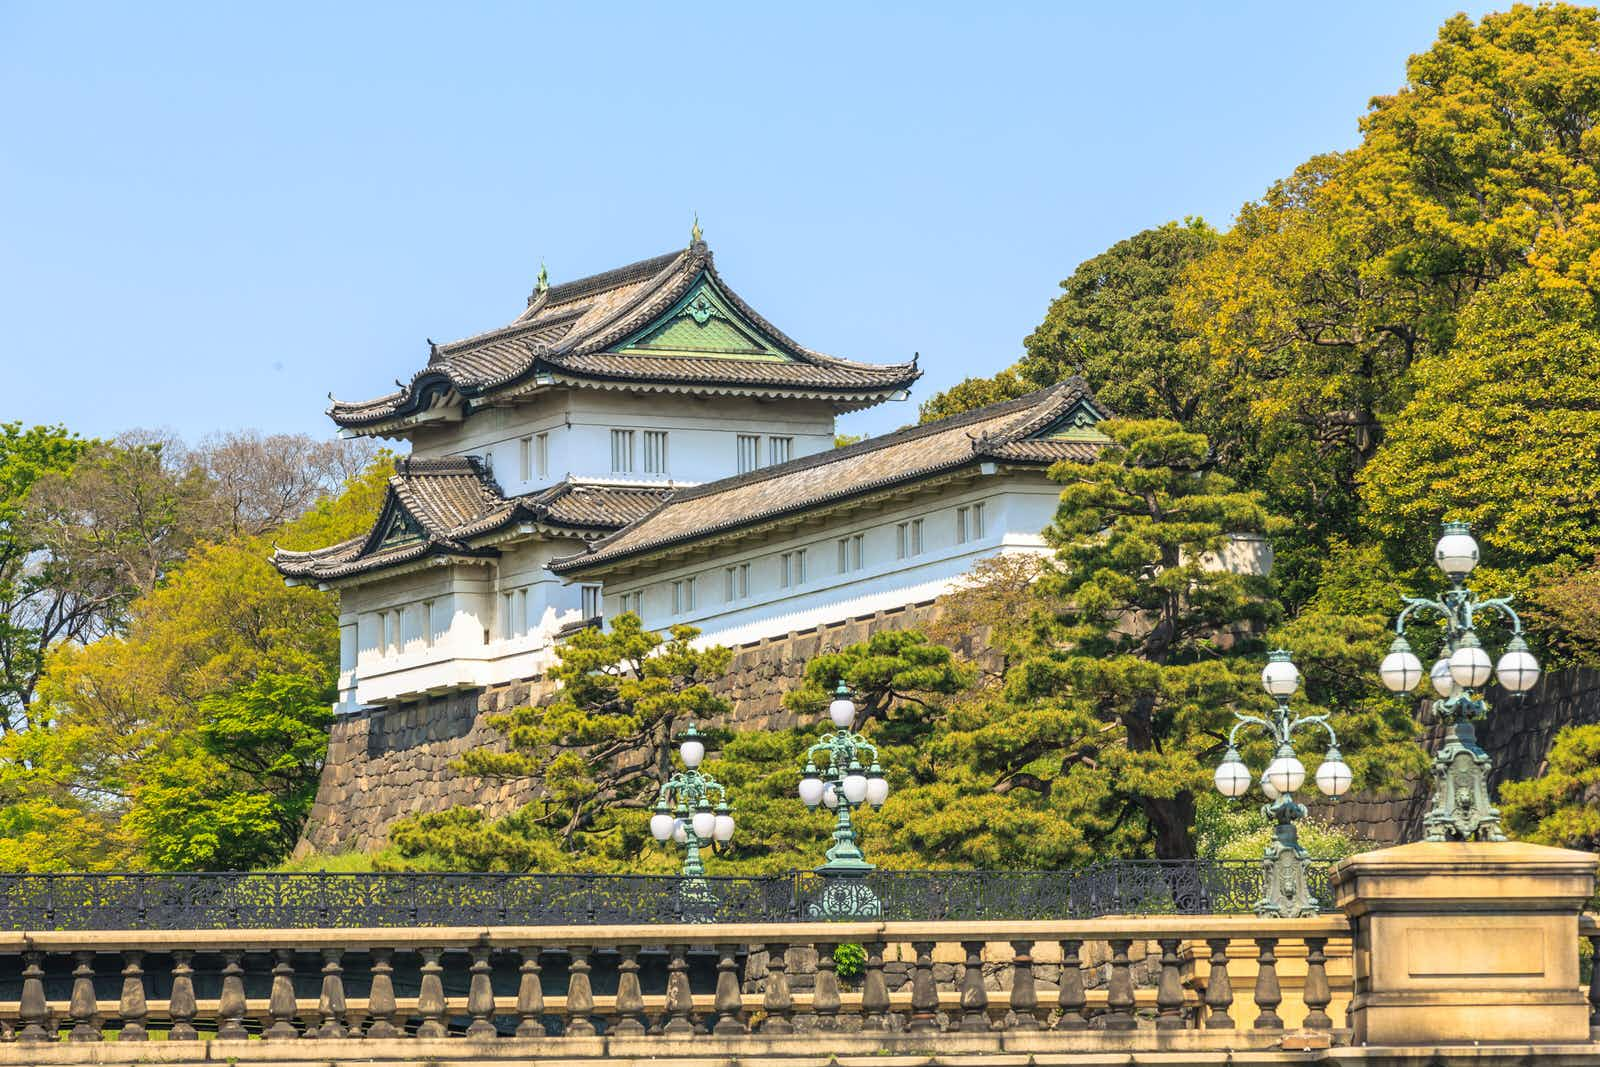 With trees on either side and a balustrade in front, the Imperial Palace in Tokyo, Japan, stands beneath a blue sky, painted white with ornate eaves